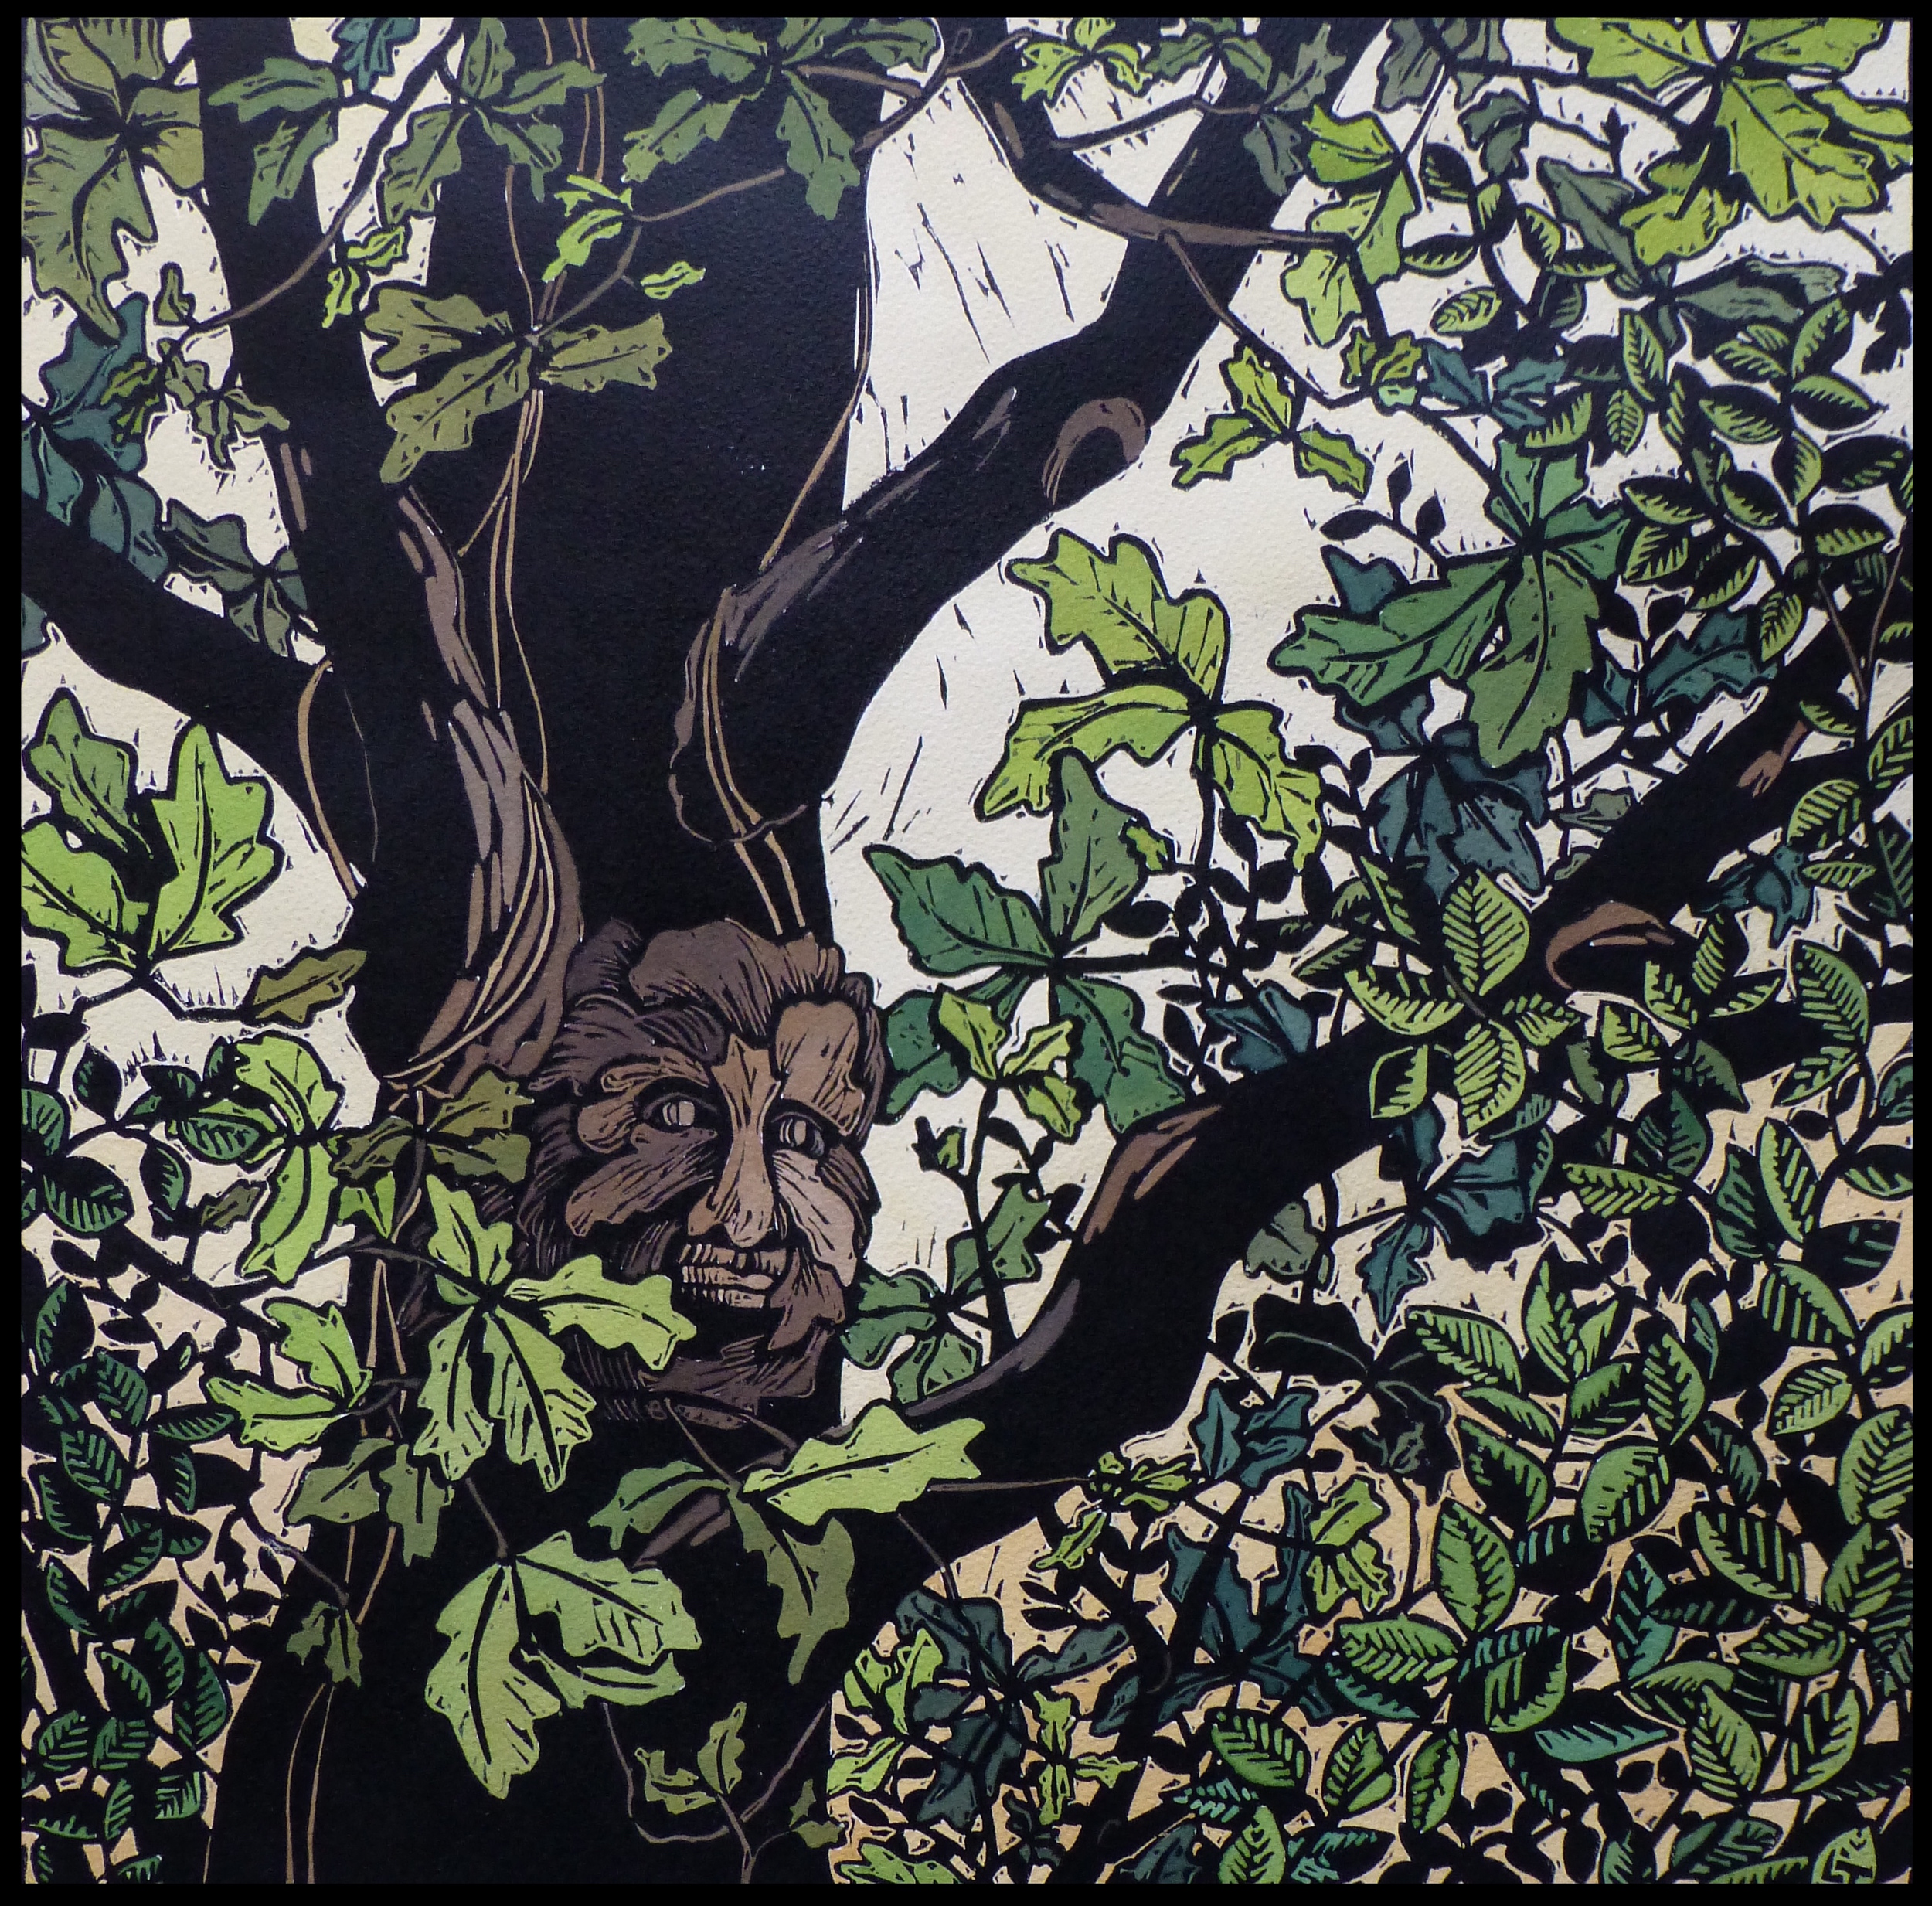 """The Green Man   Hand coloured linocut, 2013  Edition of 6  Image size: 42 cm x 43 cm  Paper size: 56 cm x 76 cm  $350                      Normal   0           false   false   false     EN-AU   JA   X-NONE                                                                                                                                                                                                                                                                                                                                                                            /* Style Definitions */ table.MsoNormalTable {mso-style-name:""""Table Normal""""; mso-tstyle-rowband-size:0; mso-tstyle-colband-size:0; mso-style-noshow:yes; mso-style-priority:99; mso-style-parent:""""""""; mso-padding-alt:0cm 5.4pt 0cm 5.4pt; mso-para-margin:0cm; mso-para-margin-bottom:.0001pt; mso-pagination:widow-orphan; font-size:10.0pt; font-family:""""Times New Roman"""";}         A green man is a sculpture or drawing of a face surrounded by or made from leaves and foliage. The idea has appeared in many ancient cultures and is generally interpreted as a symbol of rebirth. This green man has been carved into a knot on an oak tree."""